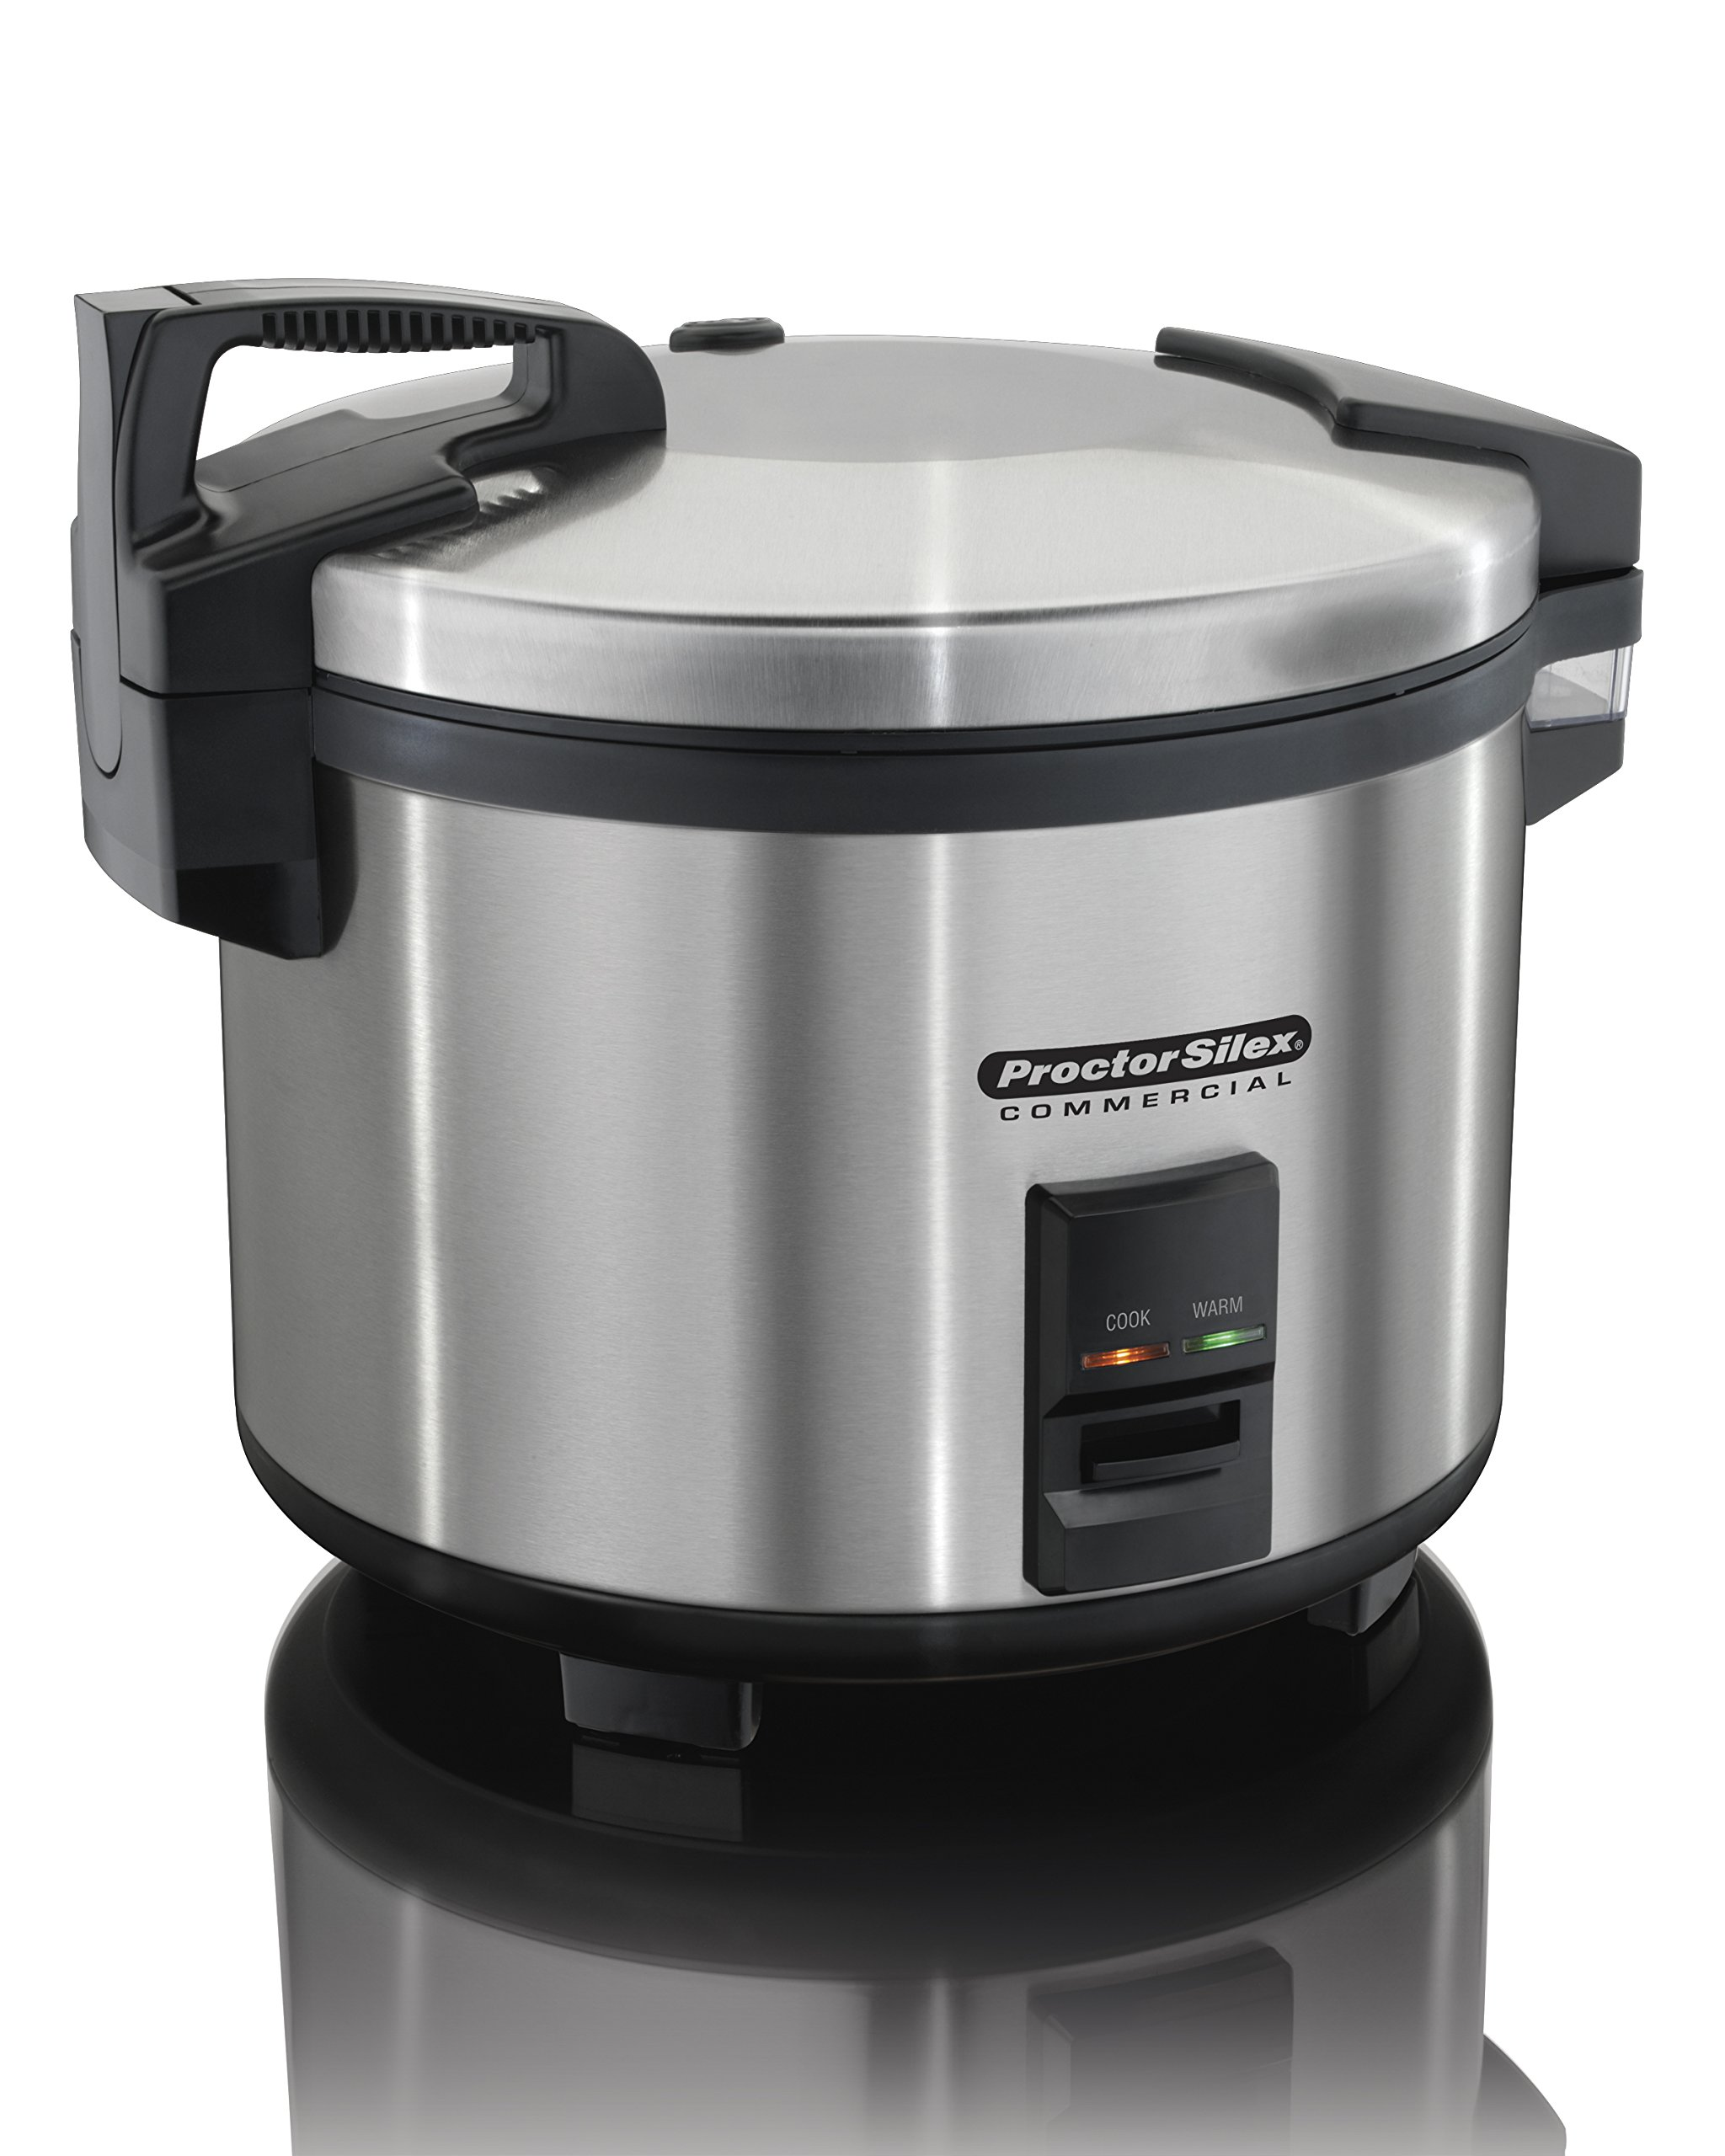 Proctor Silex Commercial 37560R Rice Cooker/Warmer, 60 Cups Cooked Rice, Non-Stick Pot, Hinged Lid, Stainless Steel Housing